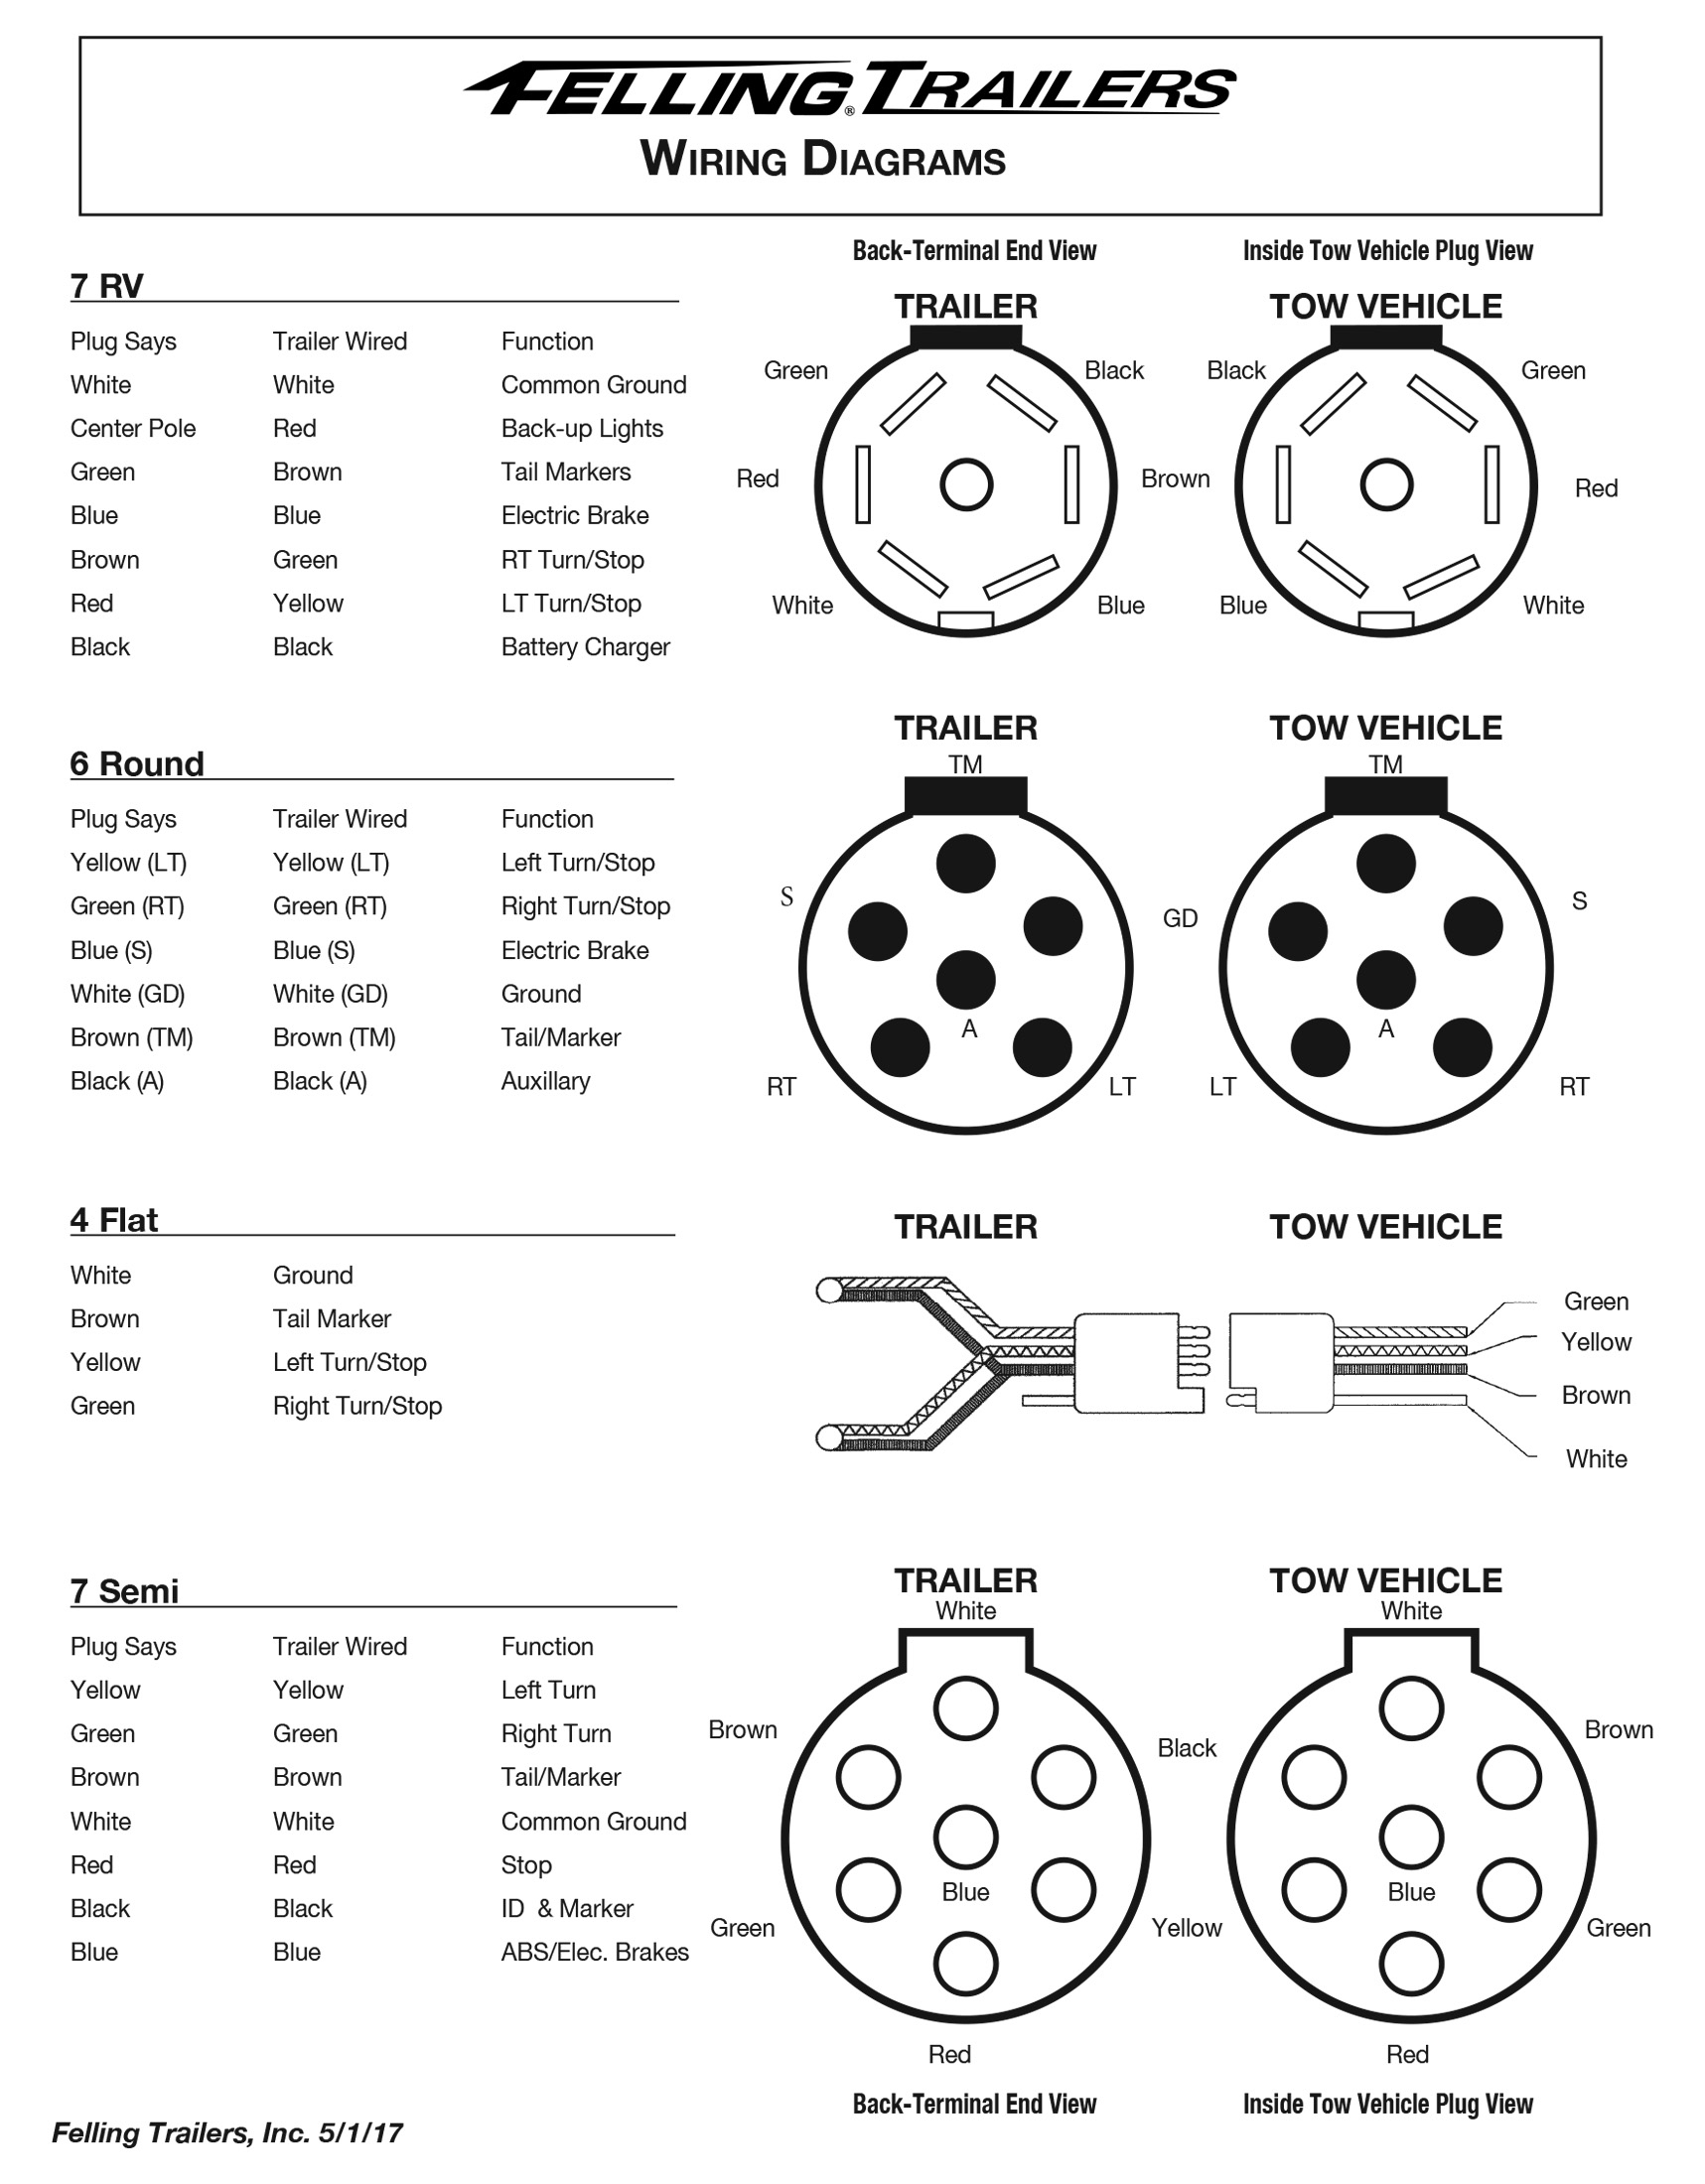 Service- Felling Trailers Wiring Diagrams, Wheel Toque - Wiring Diagram On Trailer